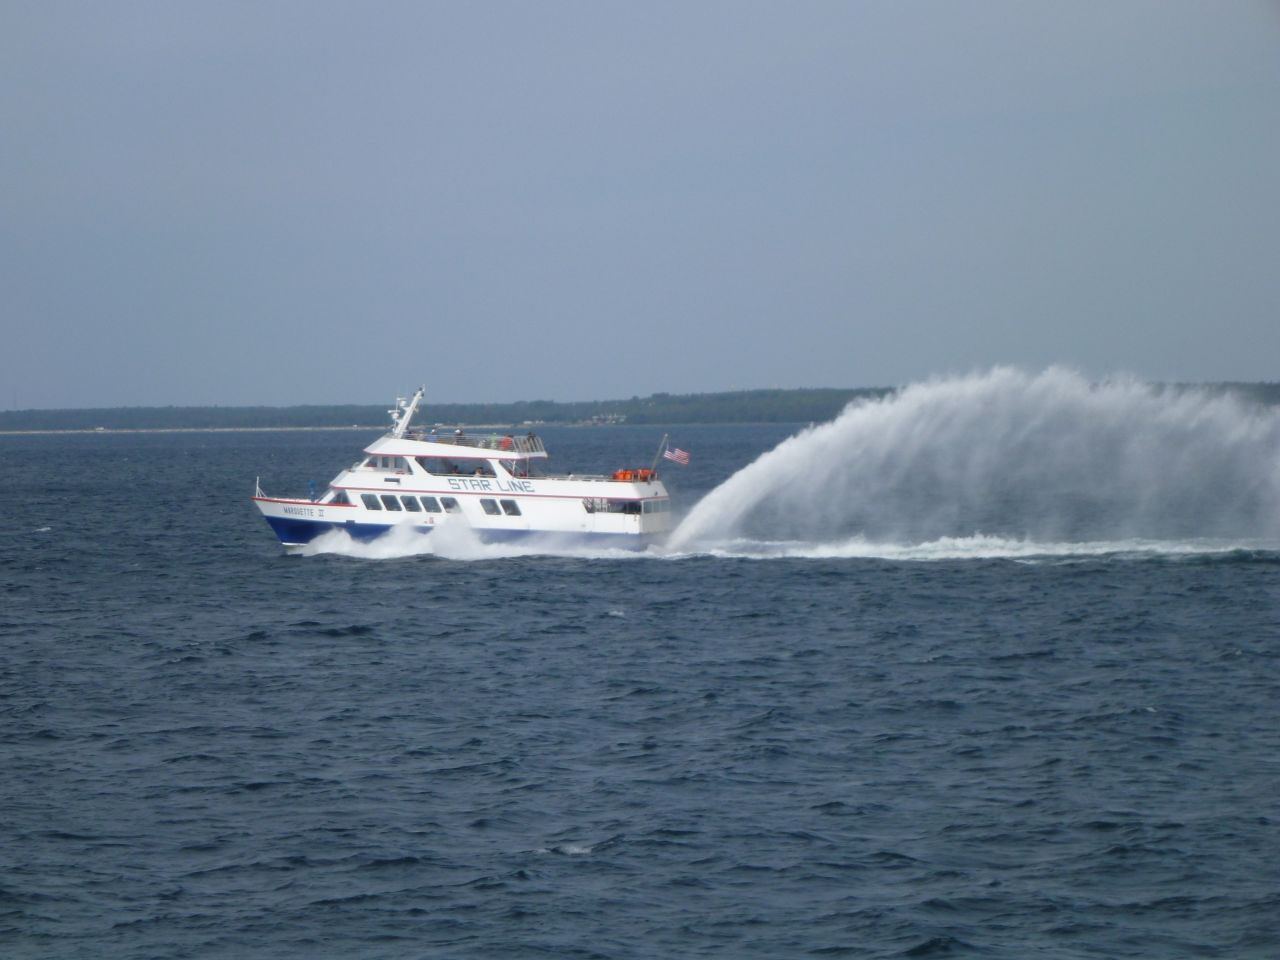 One Of The Ferries Coming From Mackinac Island